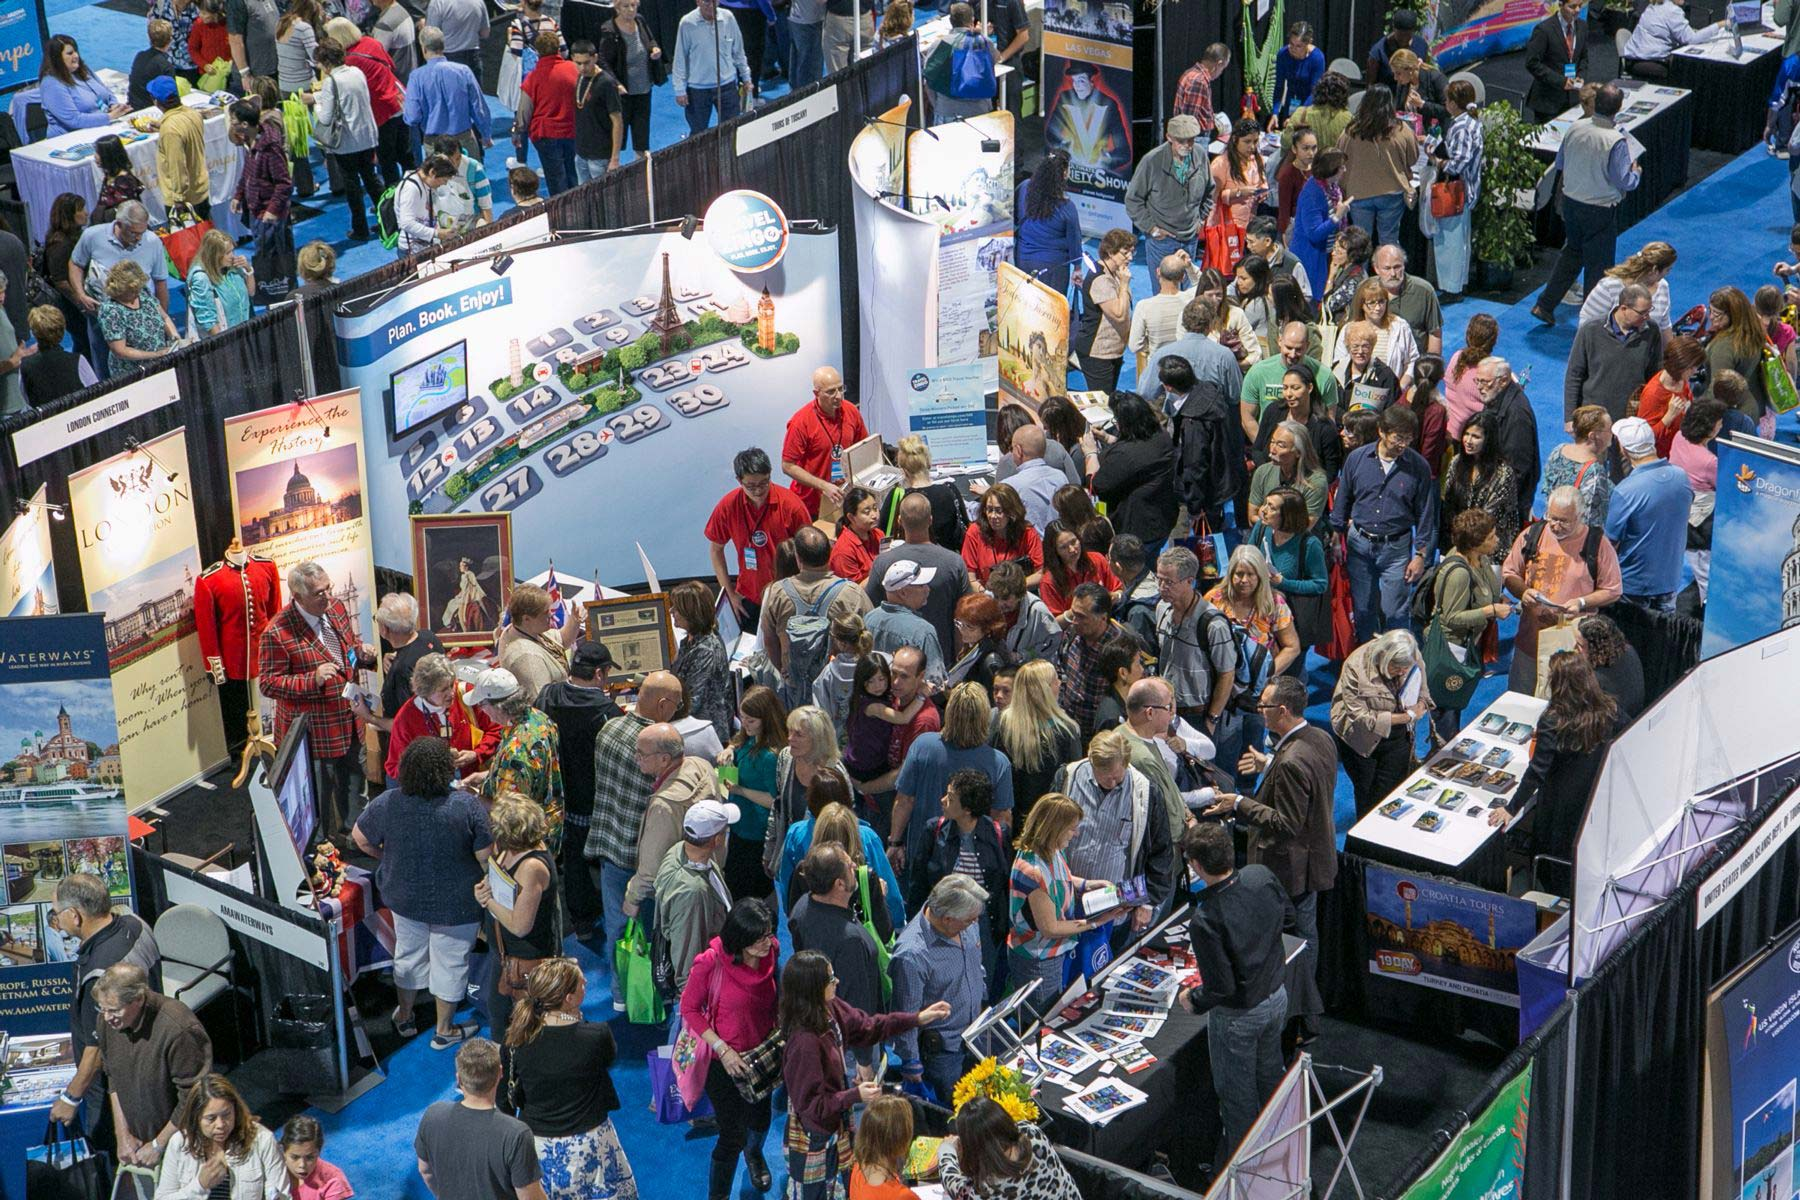 17 Ways To Find Cheap Flights: Johnny Jet at Travel & Adventure Show